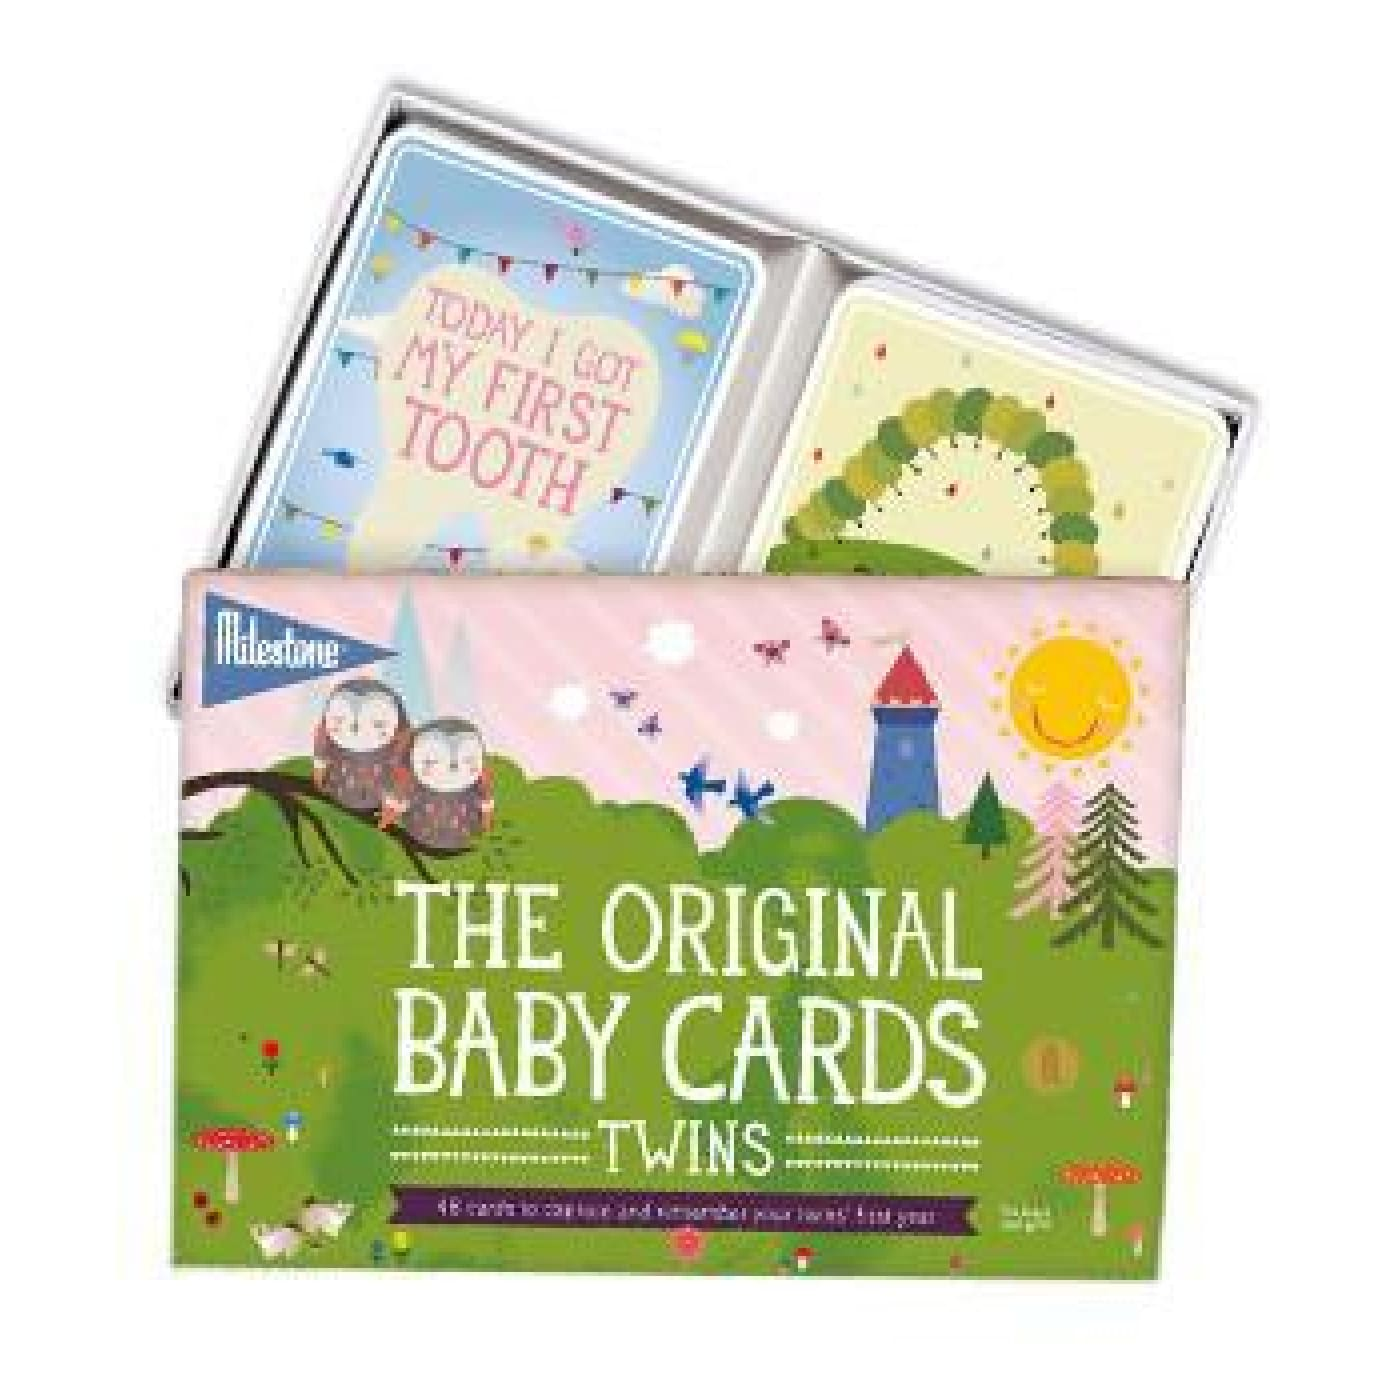 Milestone The Original Baby Photo Cards - Twins - Twins - GIFTWARE - MILESTONE BLOCKS/CARDS